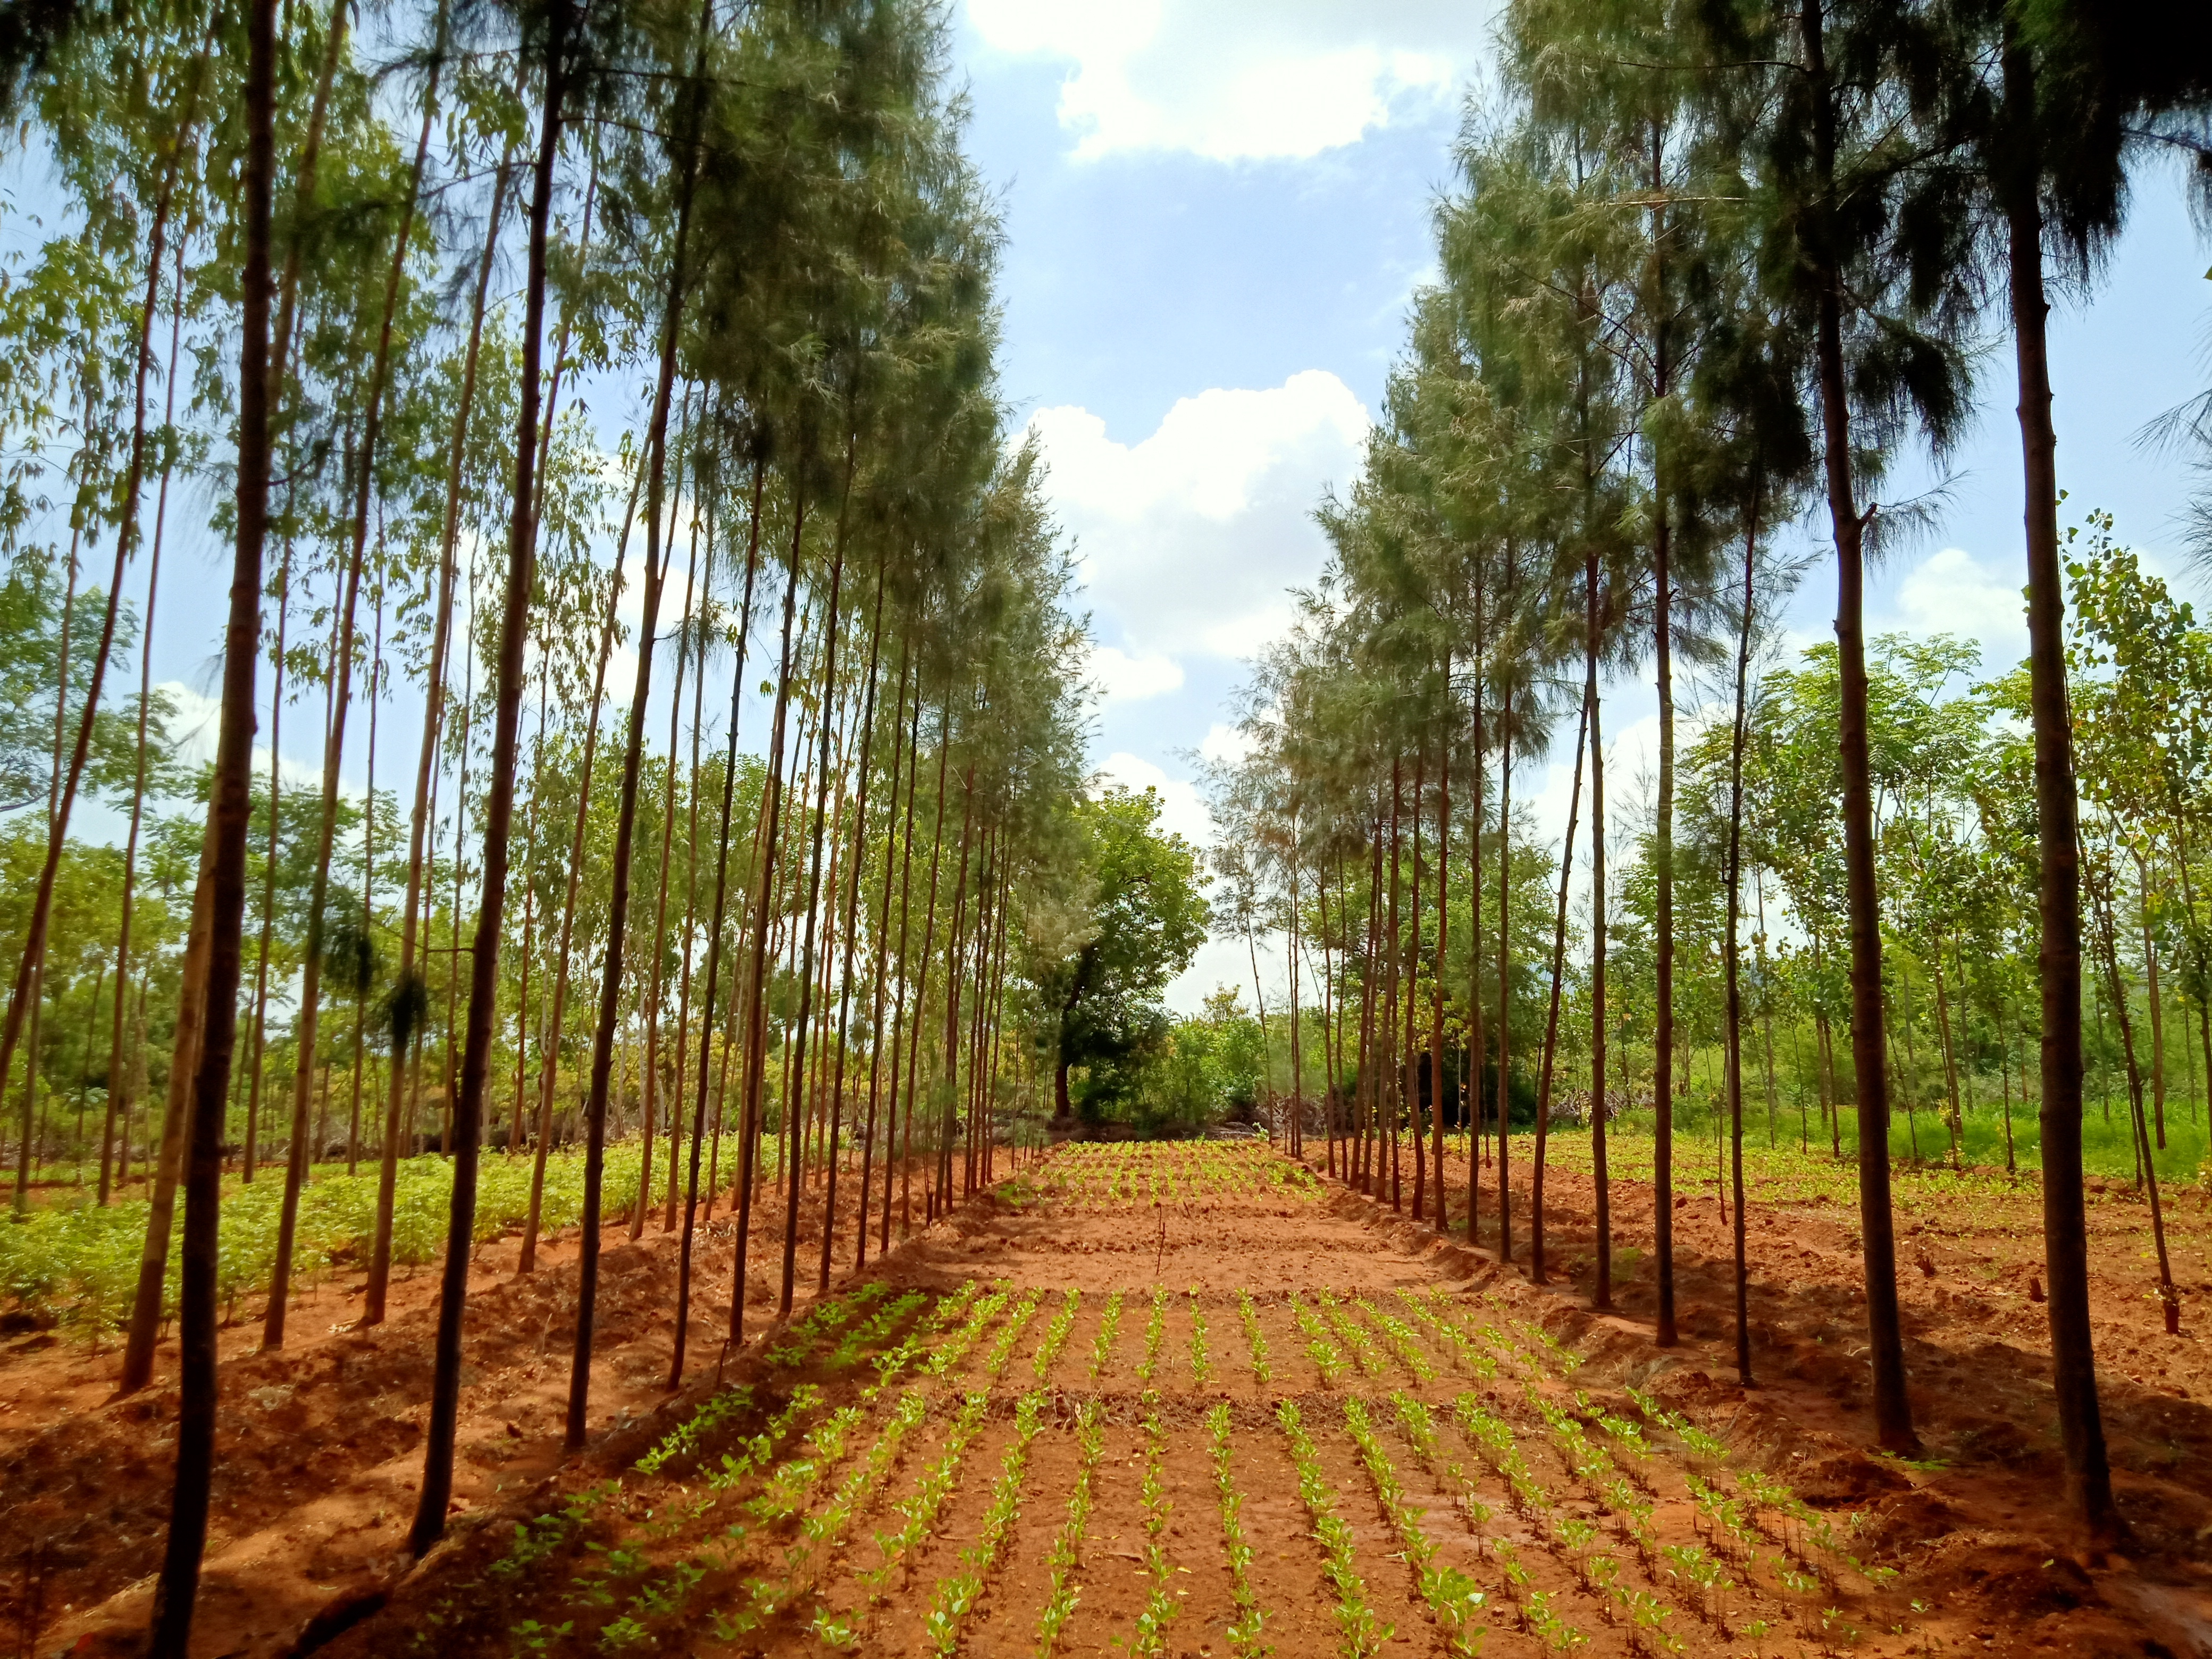 Agrisilviculture system - Casuarina + Green gram, Spacing 6 x1.5 m - 4 years old Intercrop (1)